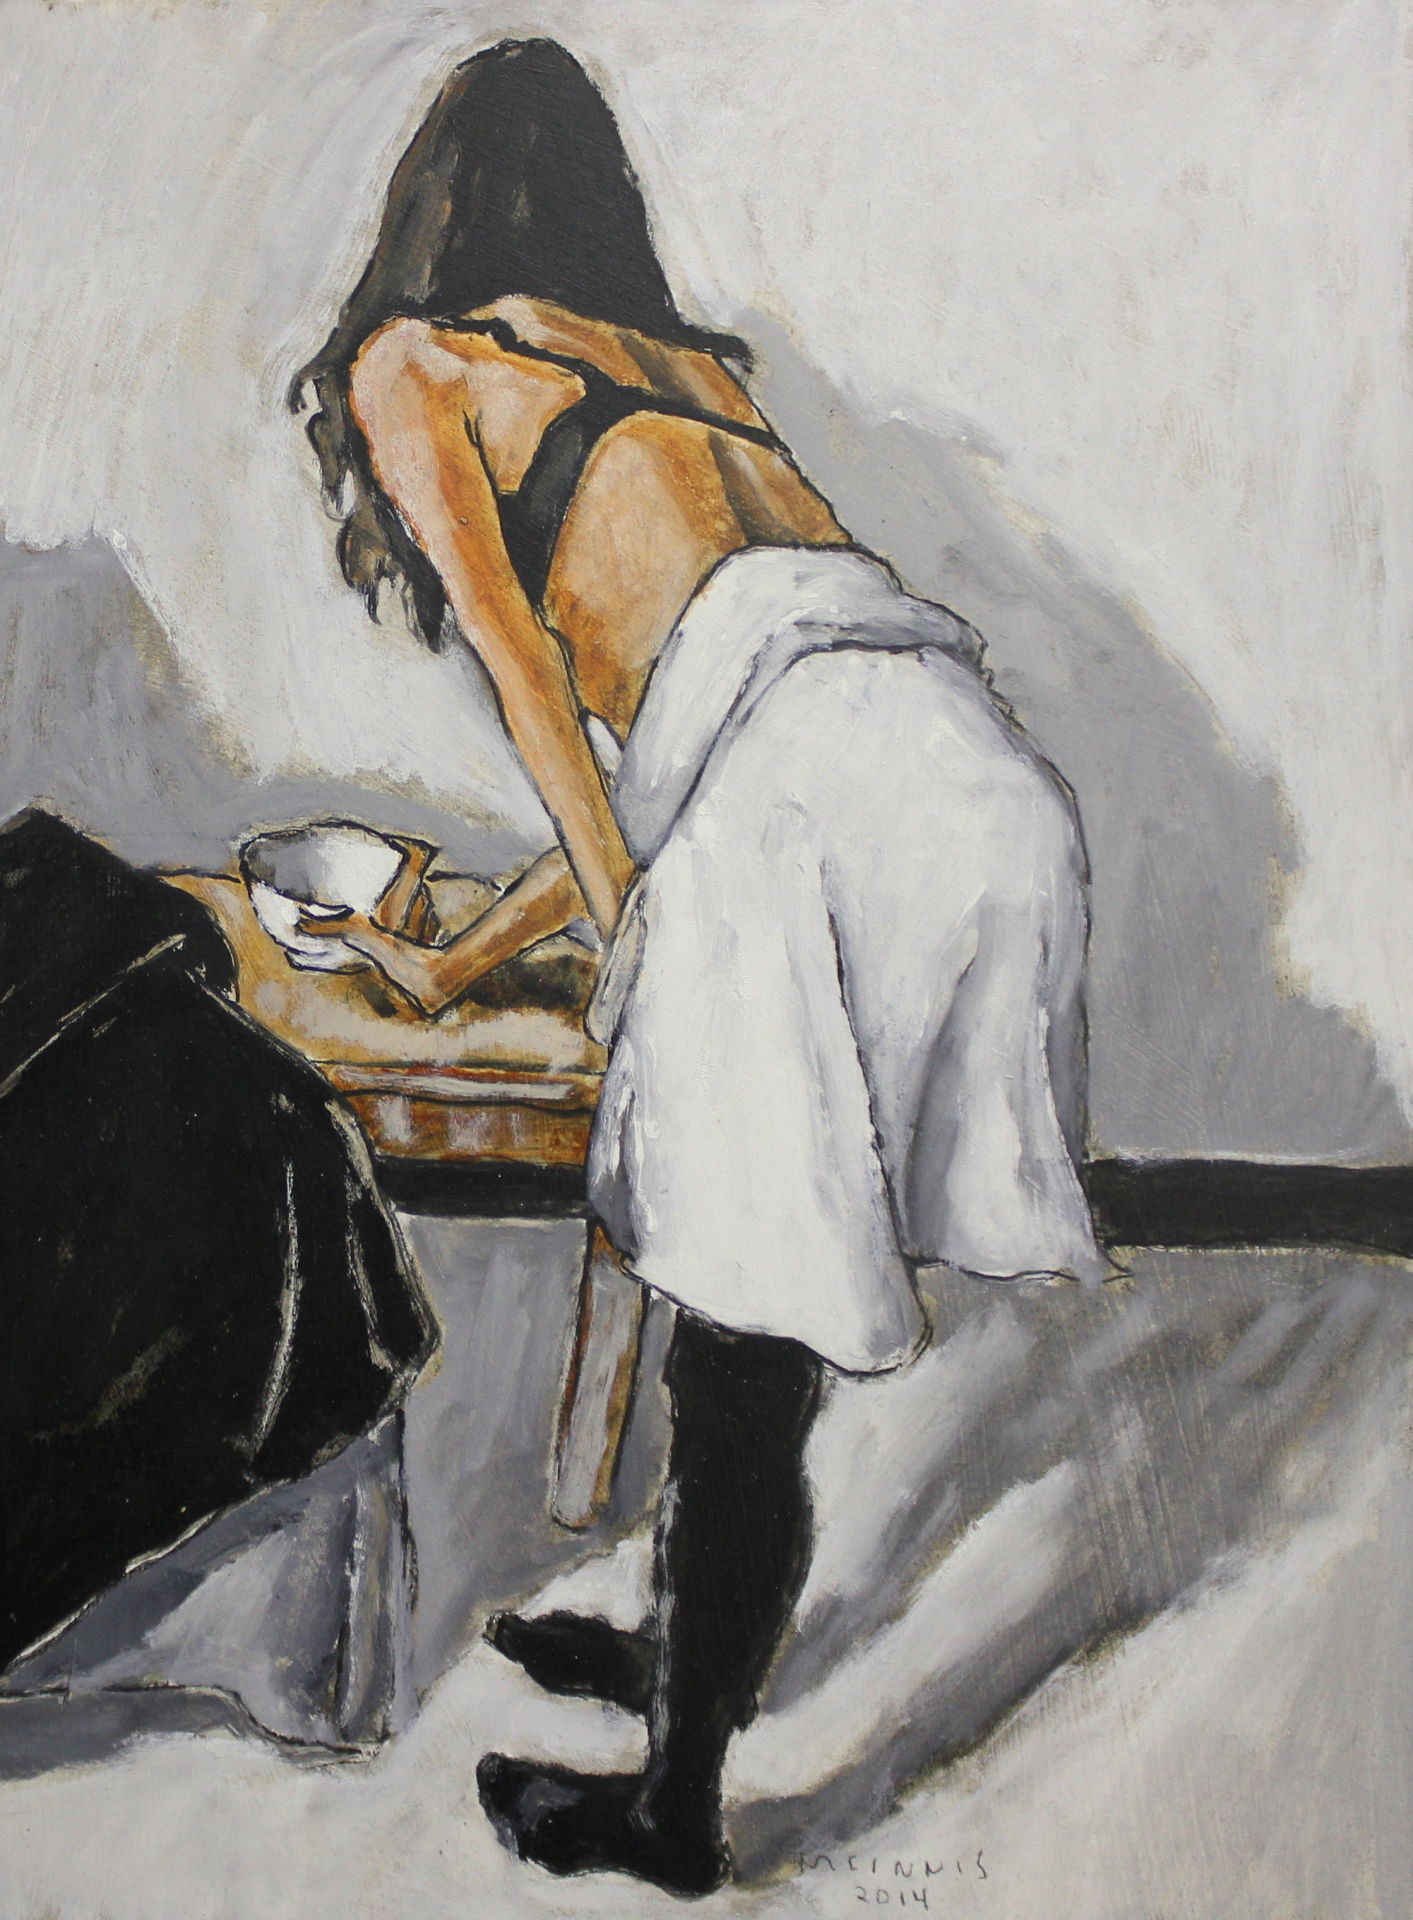 DANCER TAKING A CUP - 16X12 - OIL ON PANEL - 2014